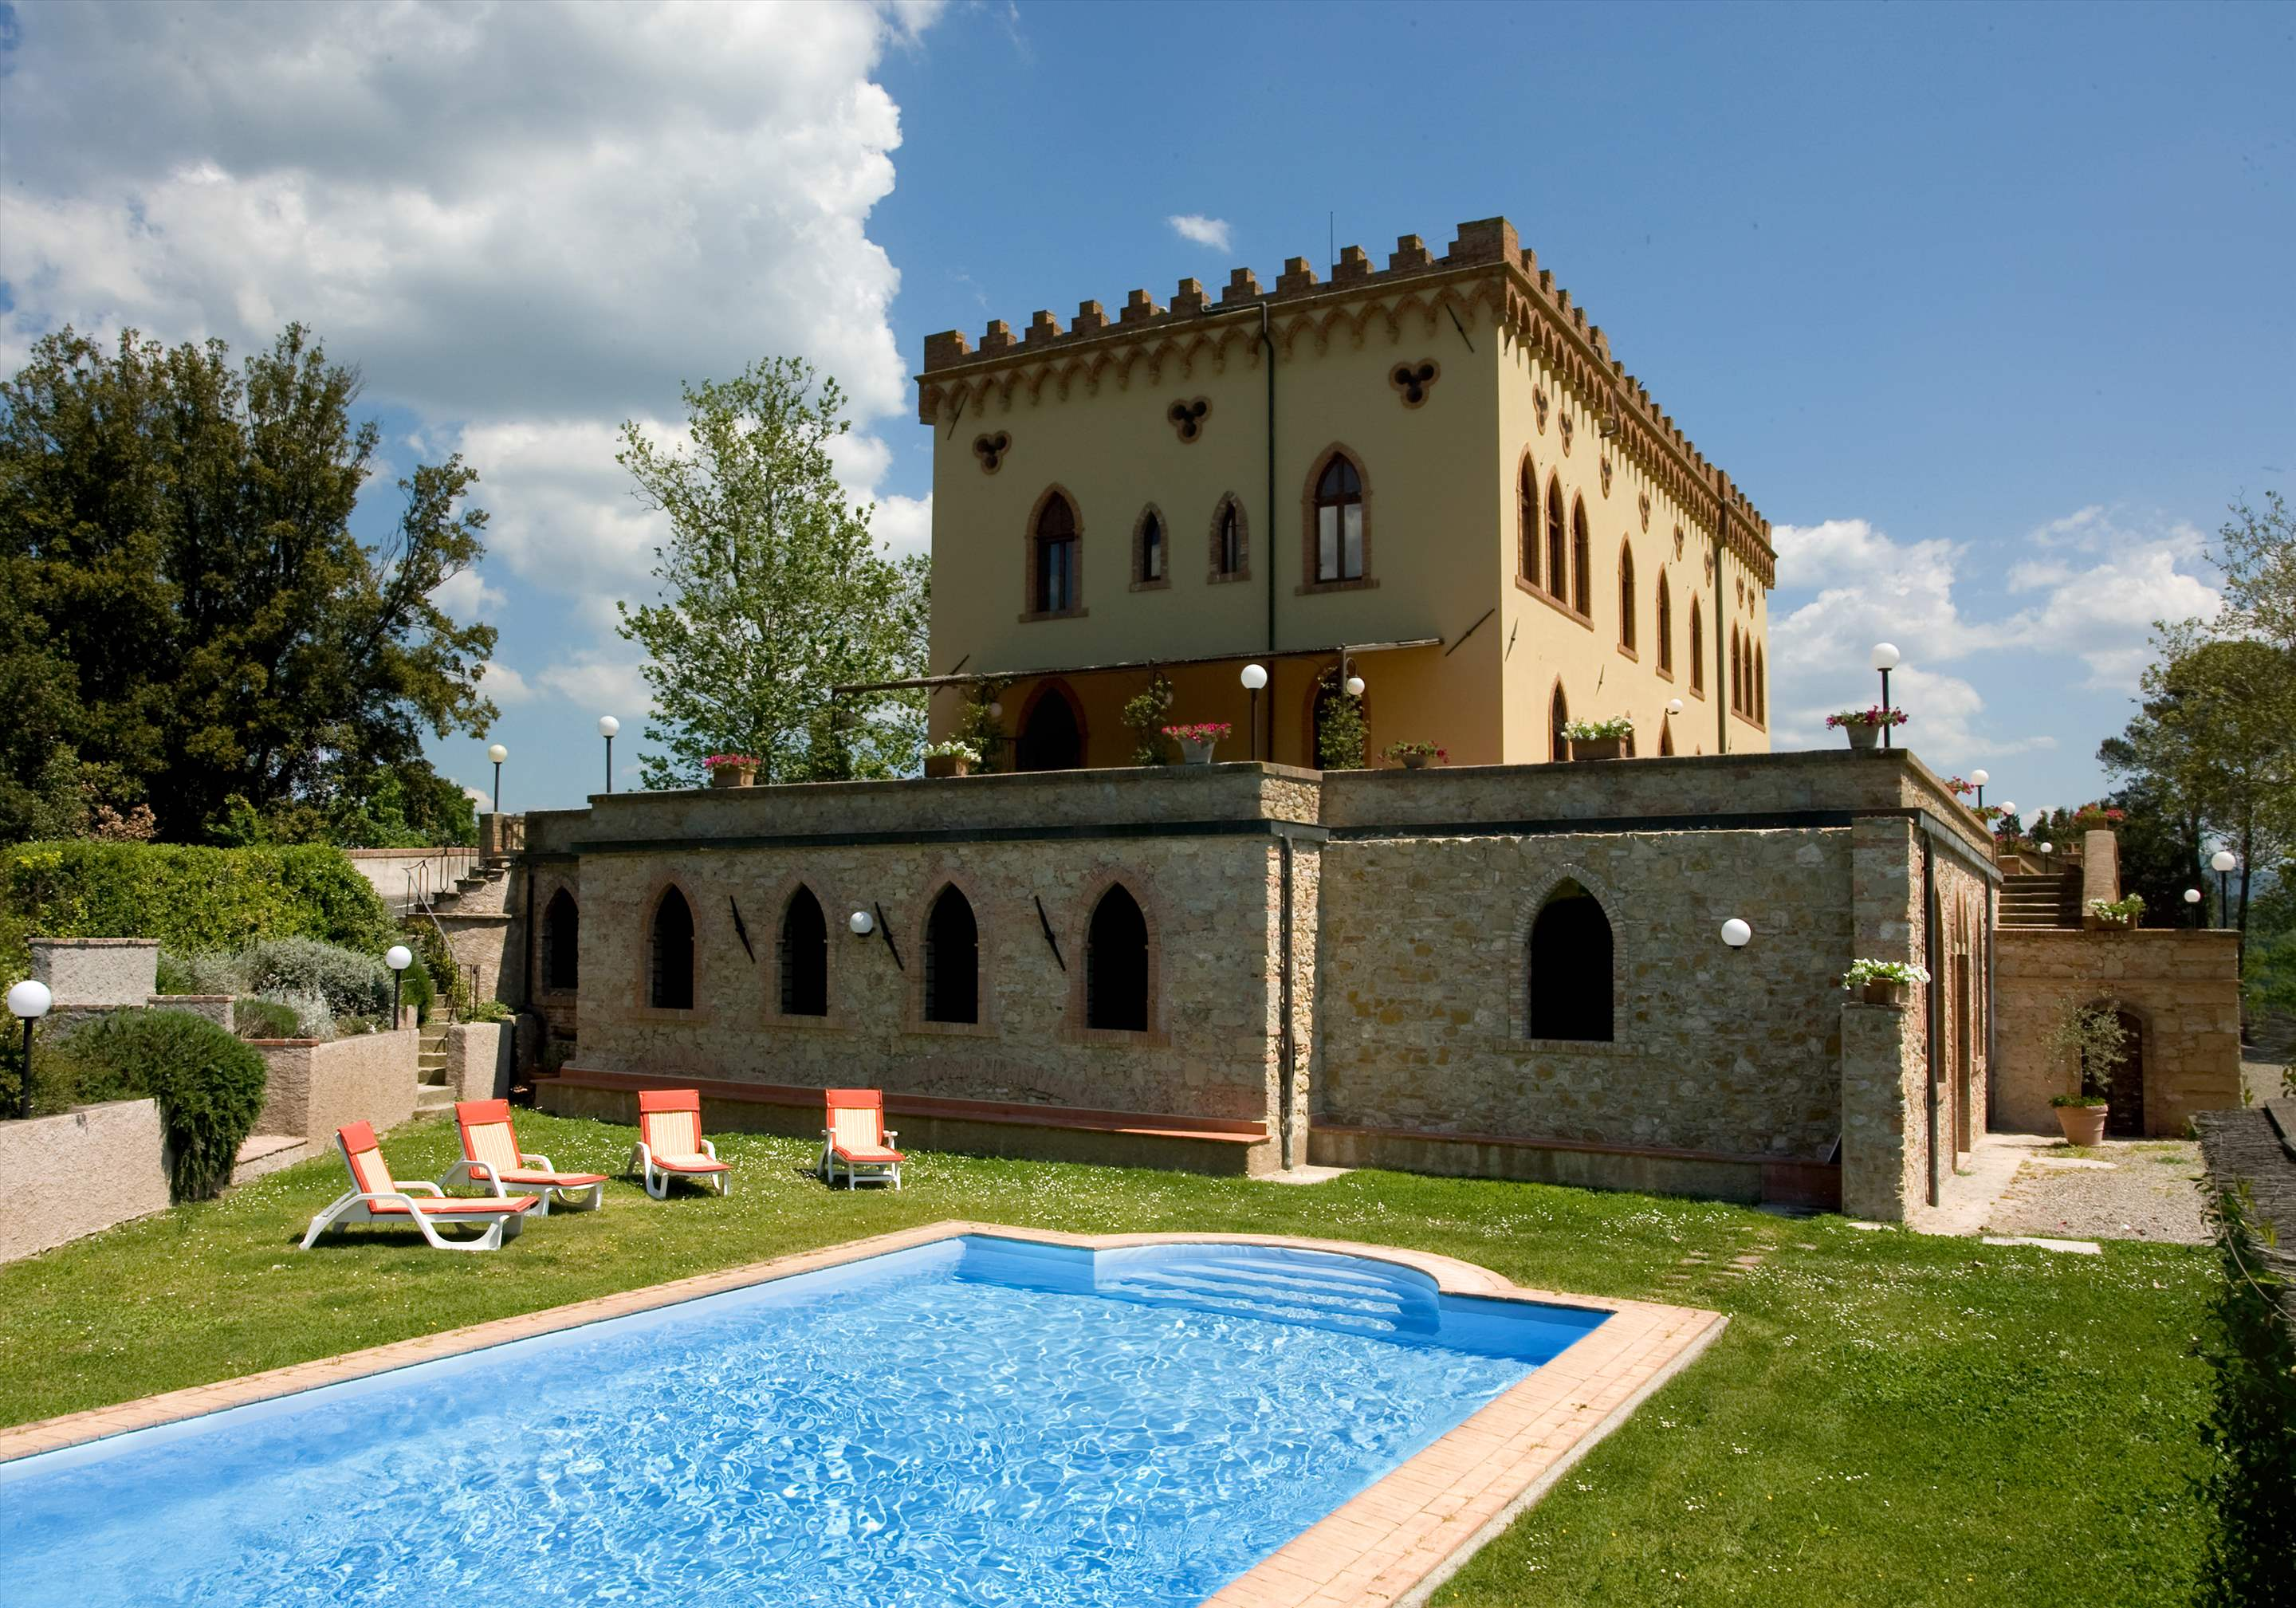 Villa Di Archi & Dependance, 9 bedroom villa in Tuscany Coast, Tuscany Photo #14